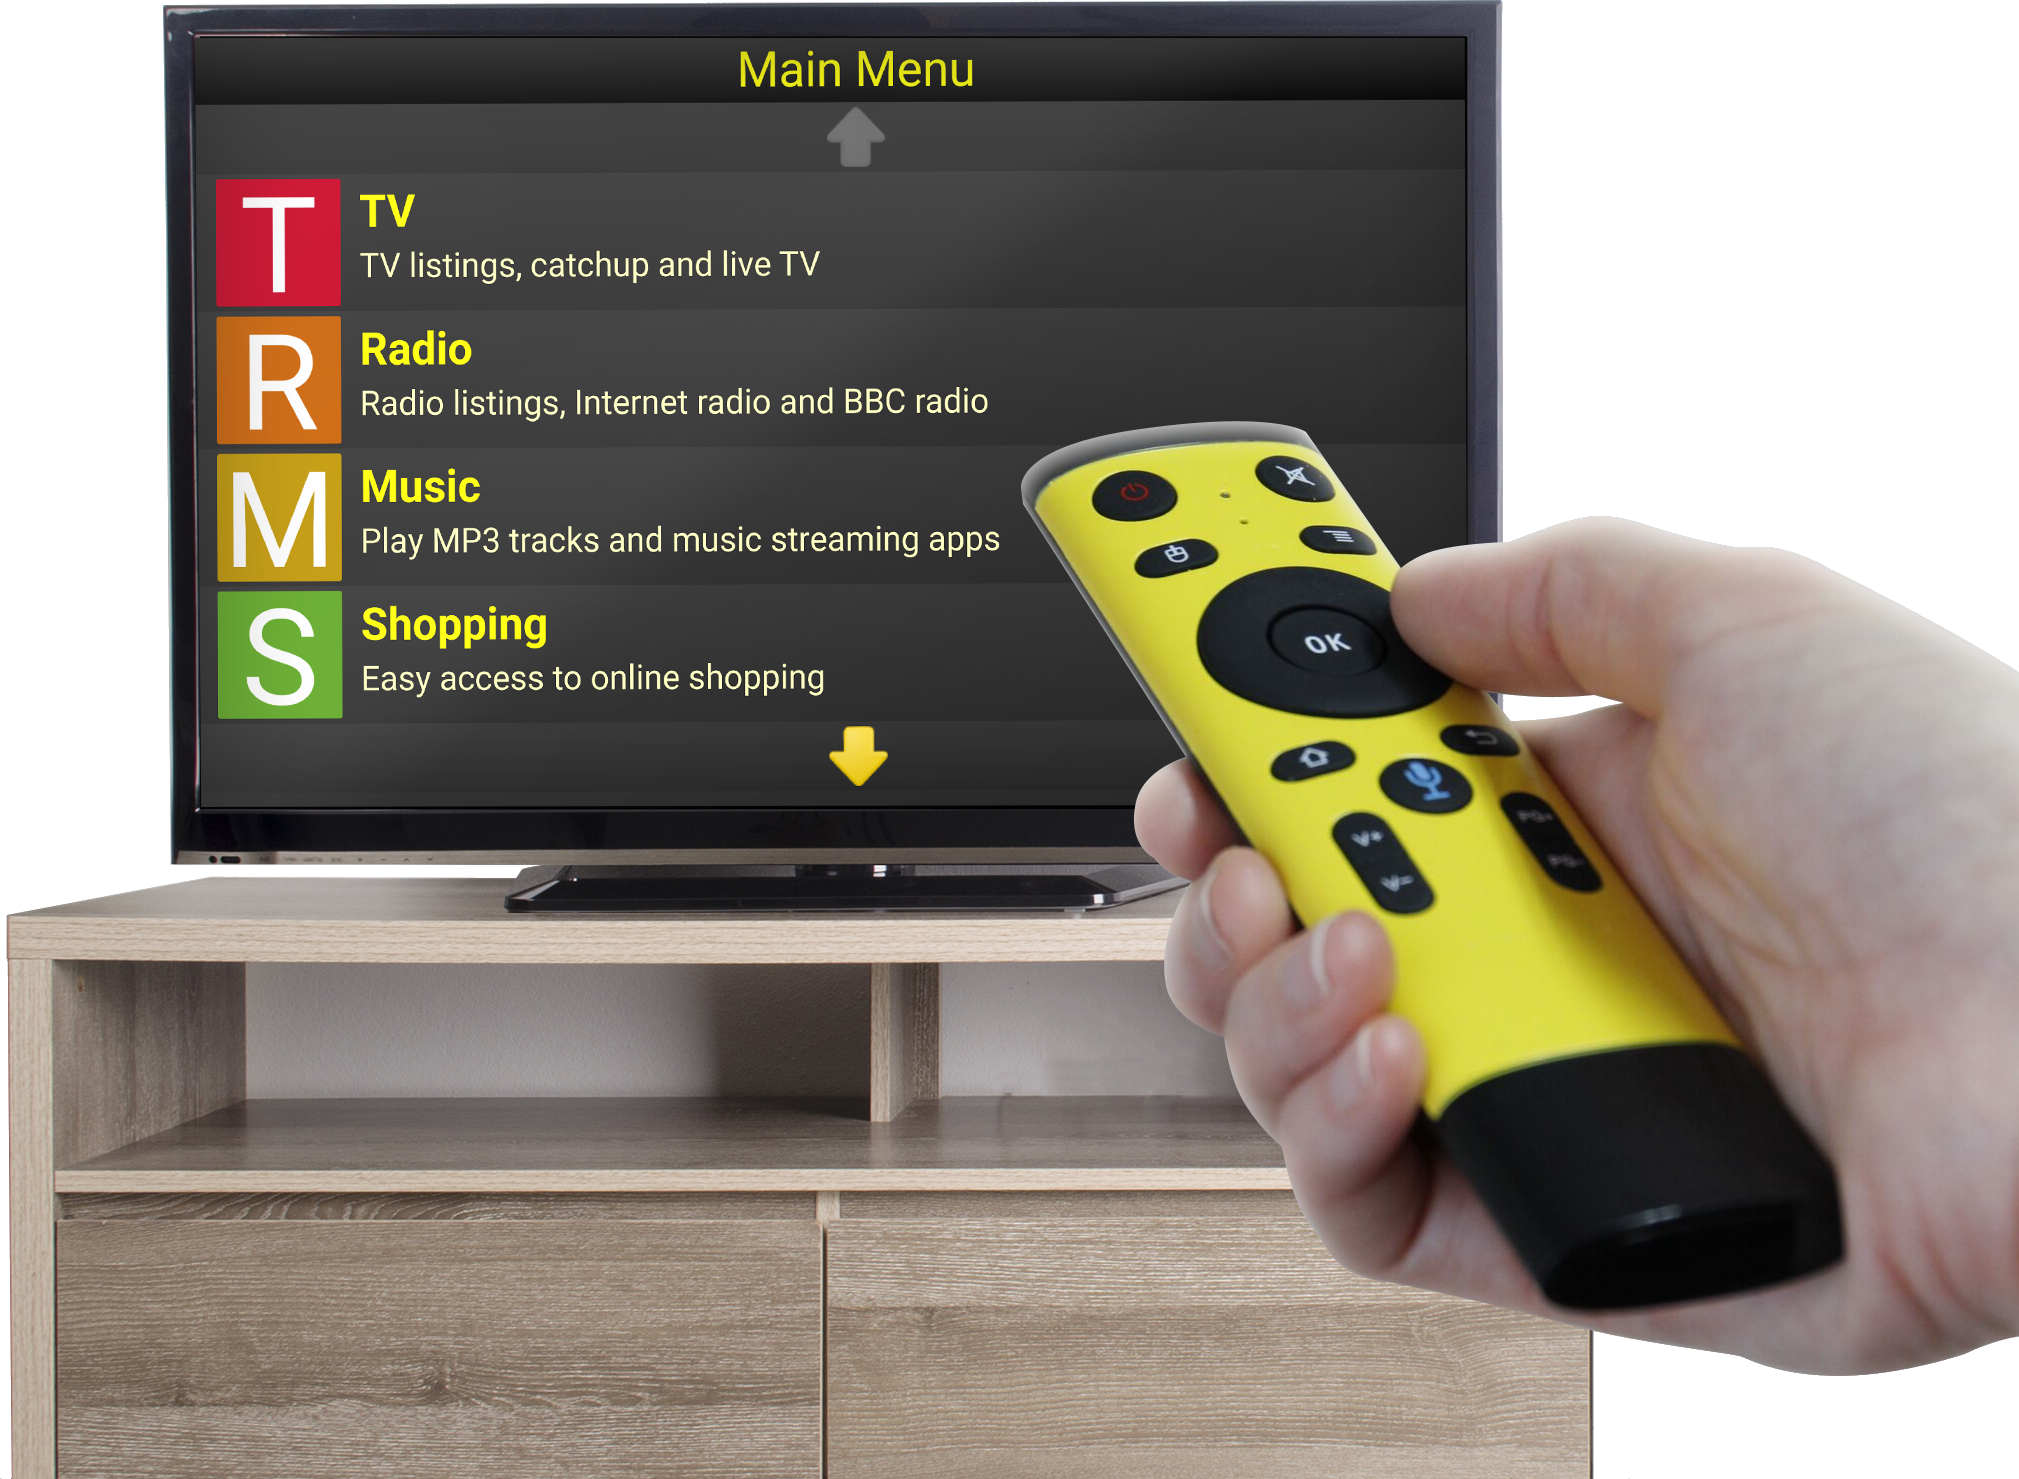 Synapptic TV Box with all accessories shown